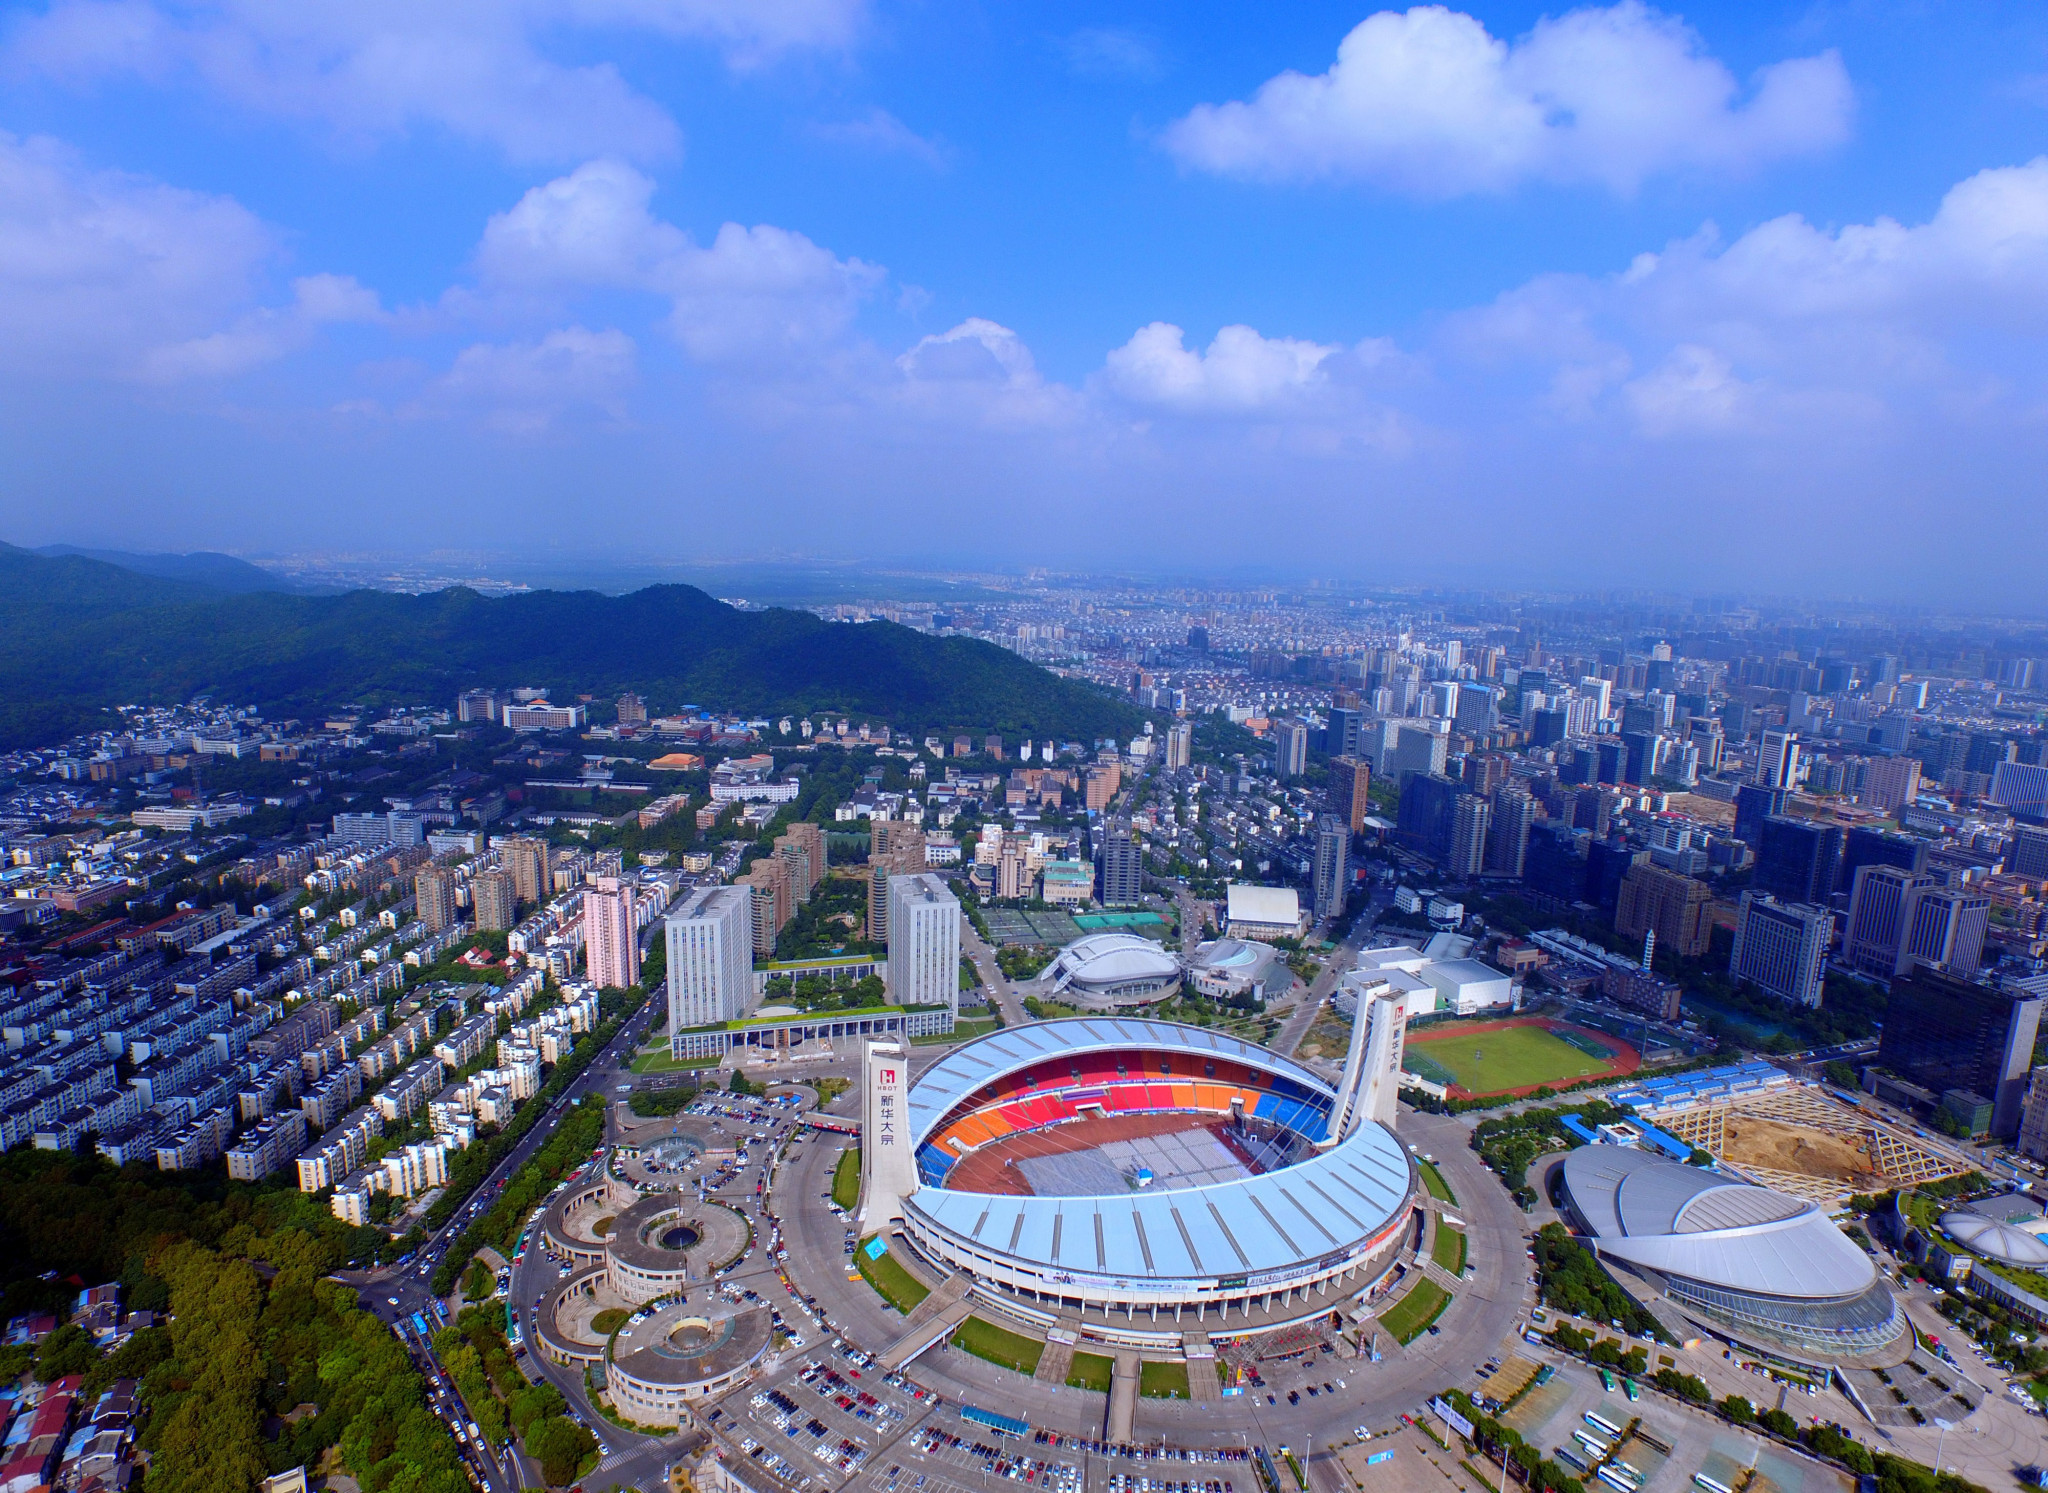 More than 10,000 athletes are expected at the Hangzhou 2022 Asian Games ©Getty Images